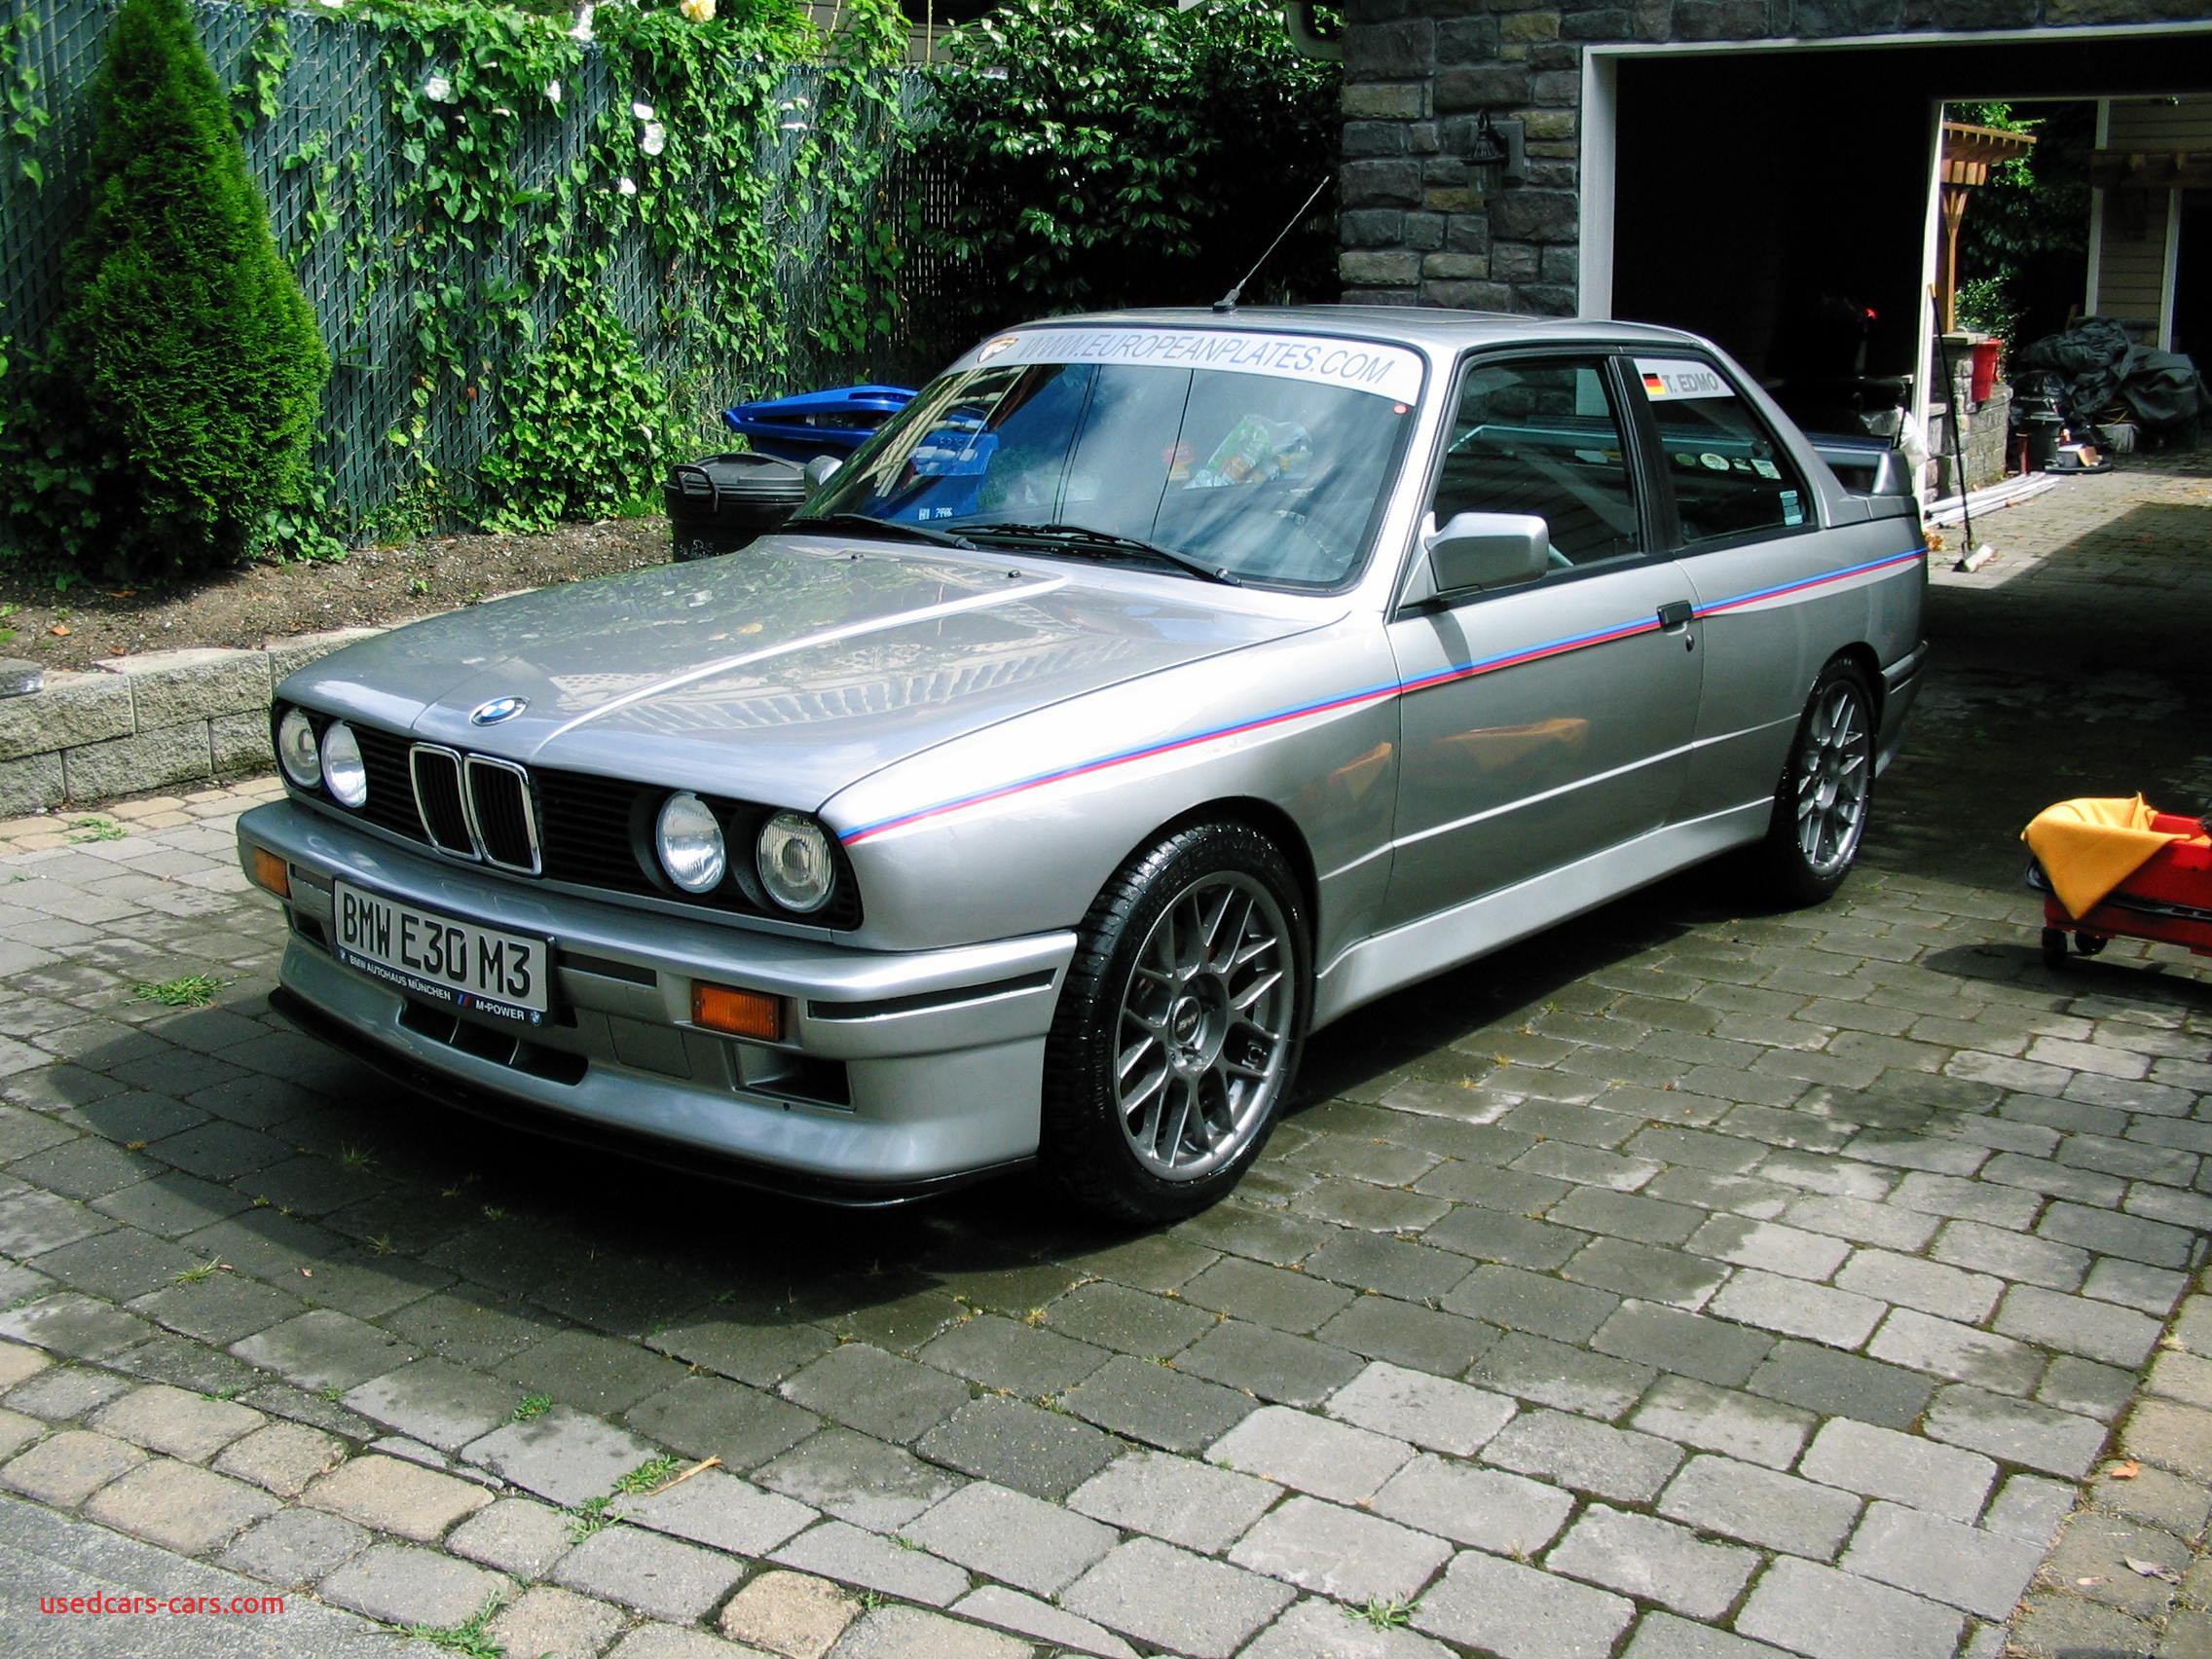 Bmw M3 1988 Beautiful 1988 Bmw M3 Silver Tricolor – German Cars for Sale Blog